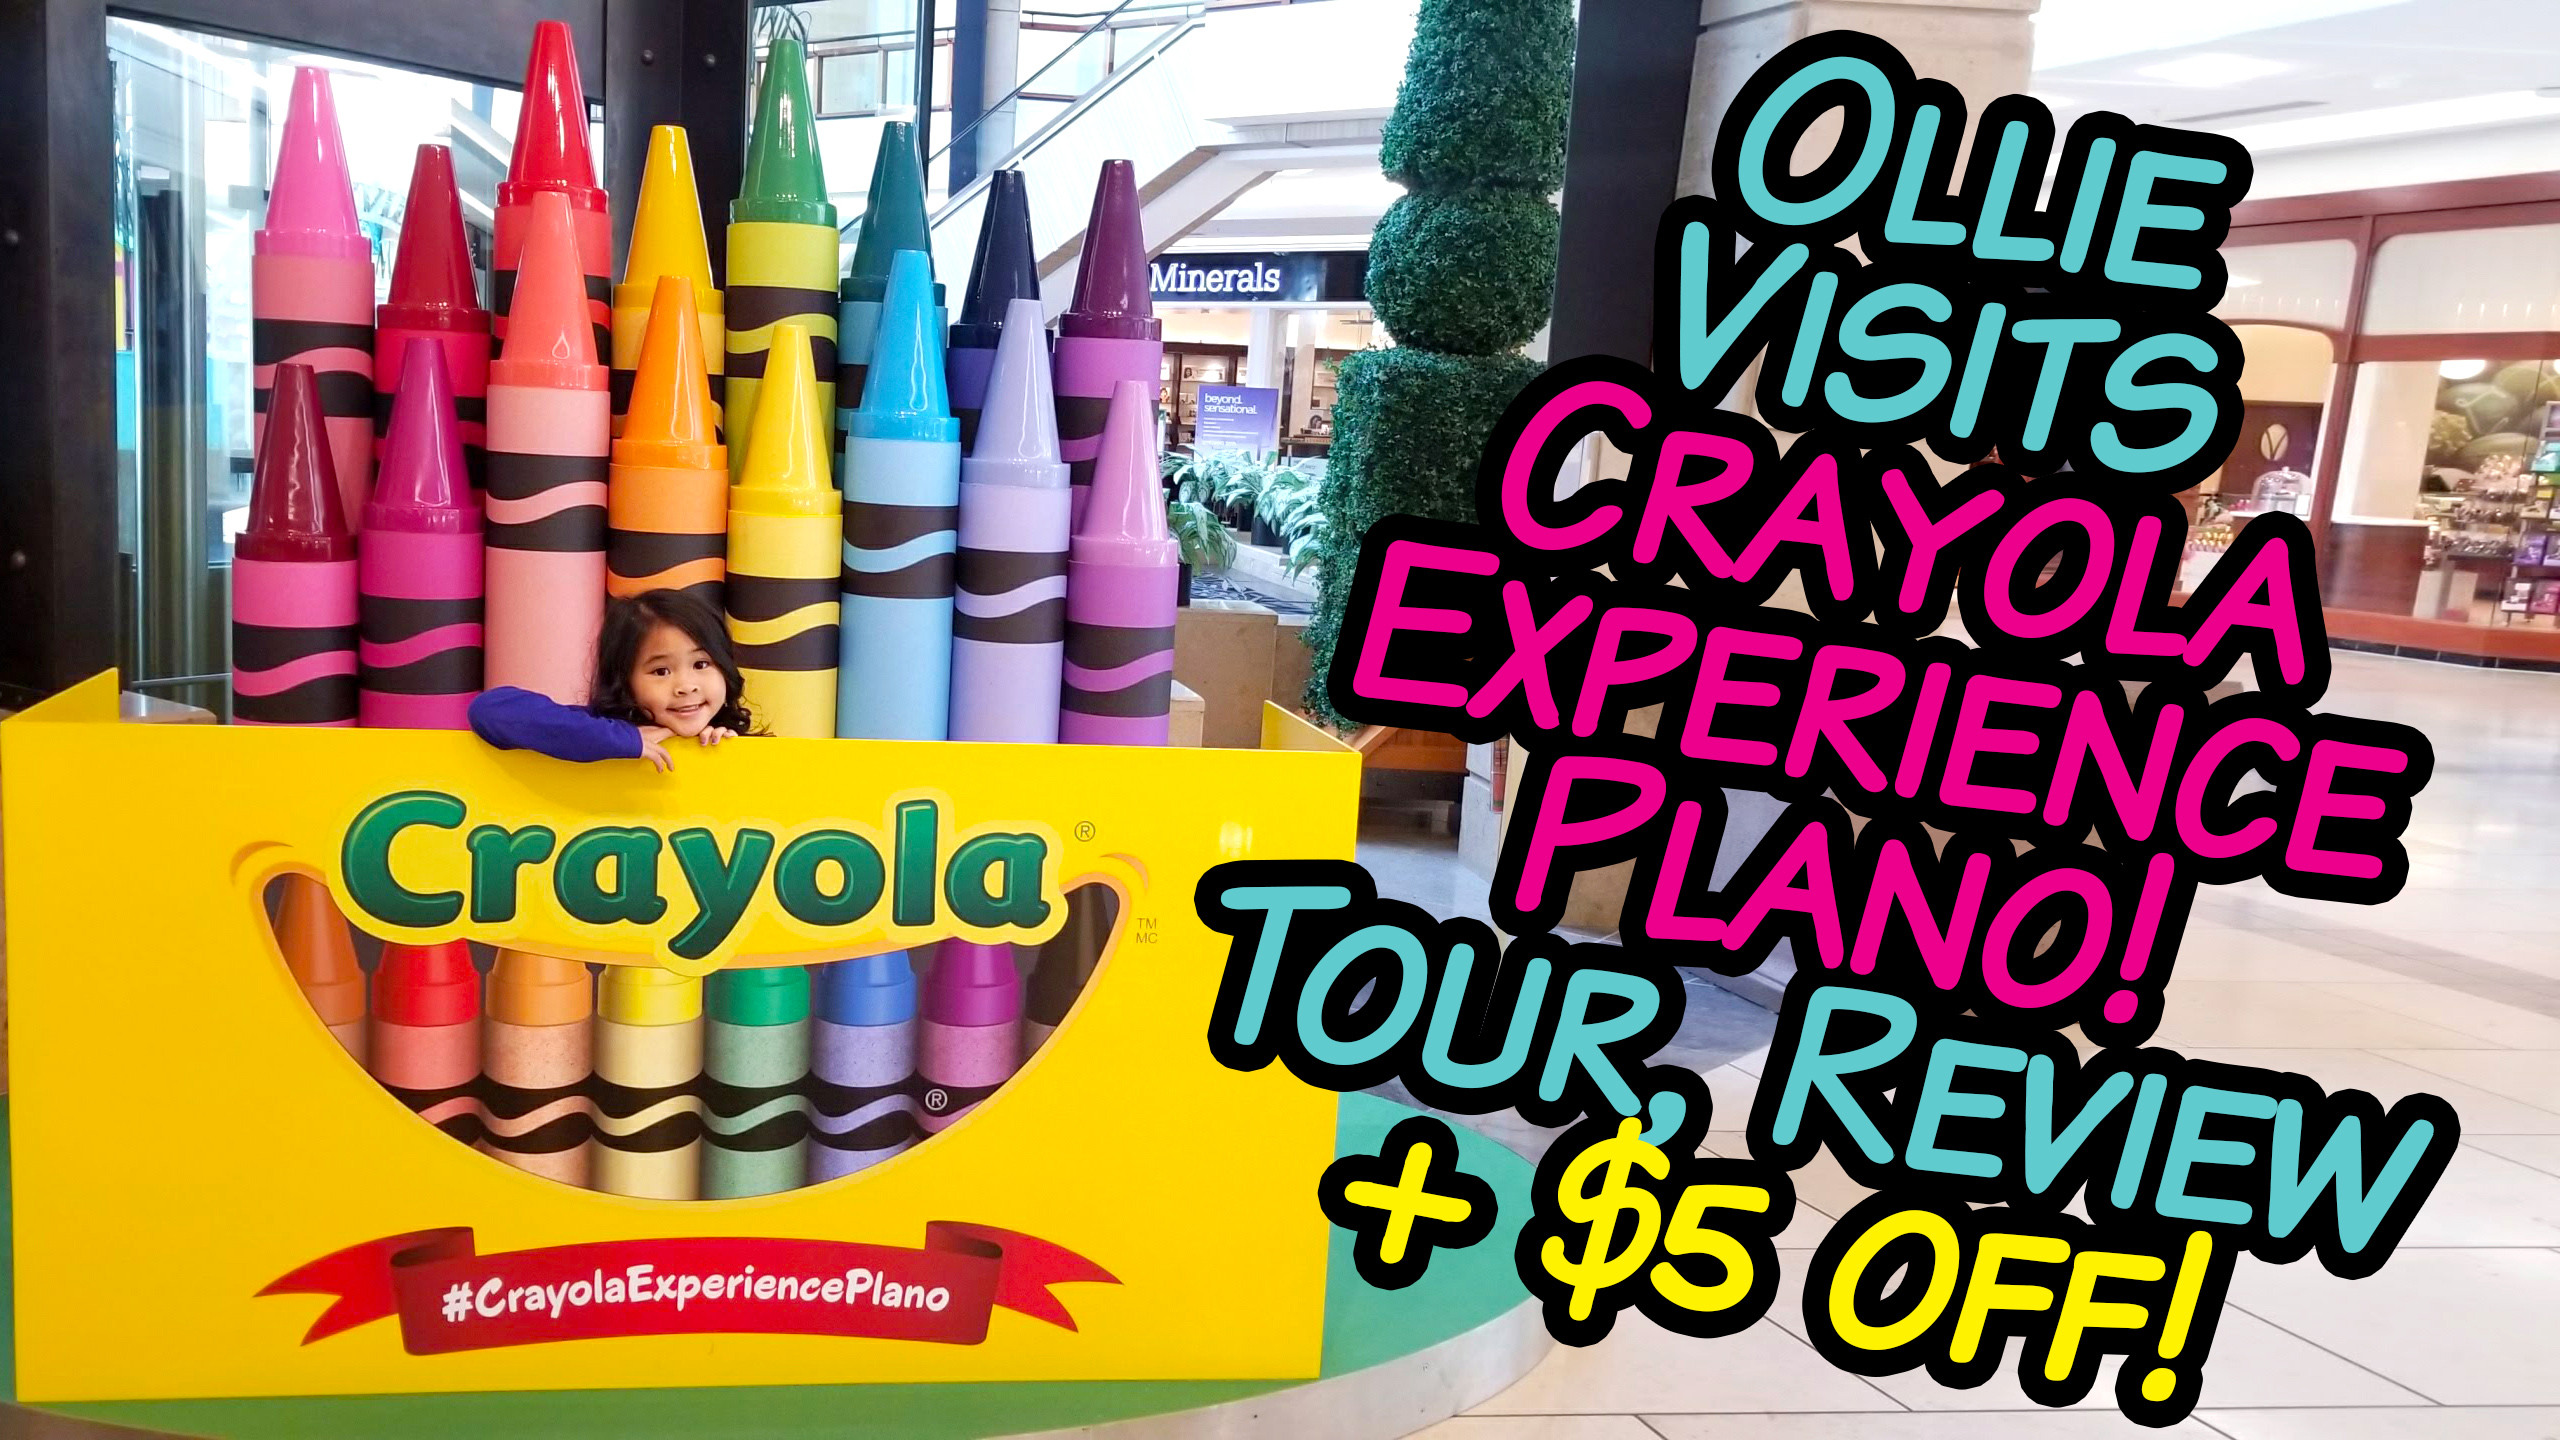 photo about Crayola Coupons Printable titled $7 Crayola Knowledge Coupon Code (all spots), Study